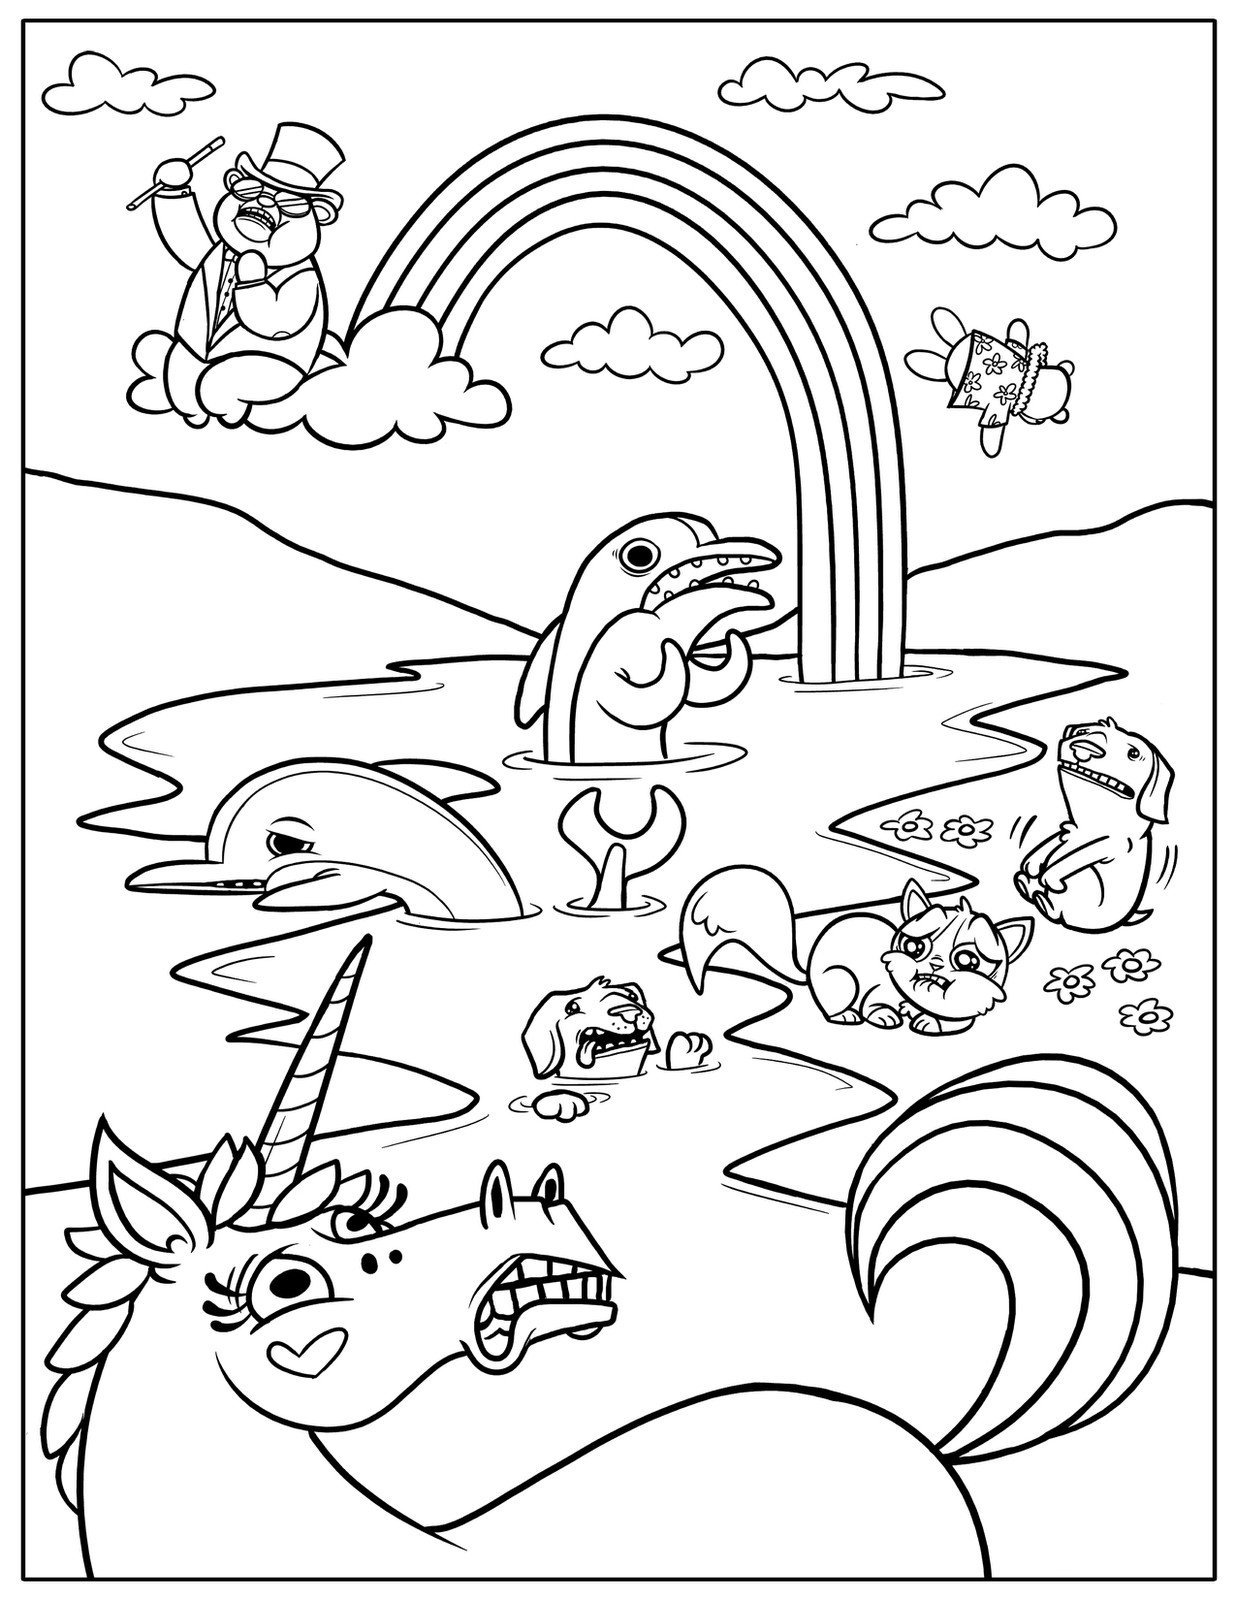 Best ideas about Cool Coloring Pages For Kids Free . Save or Pin Free Printable Rainbow Coloring Pages For Kids Now.